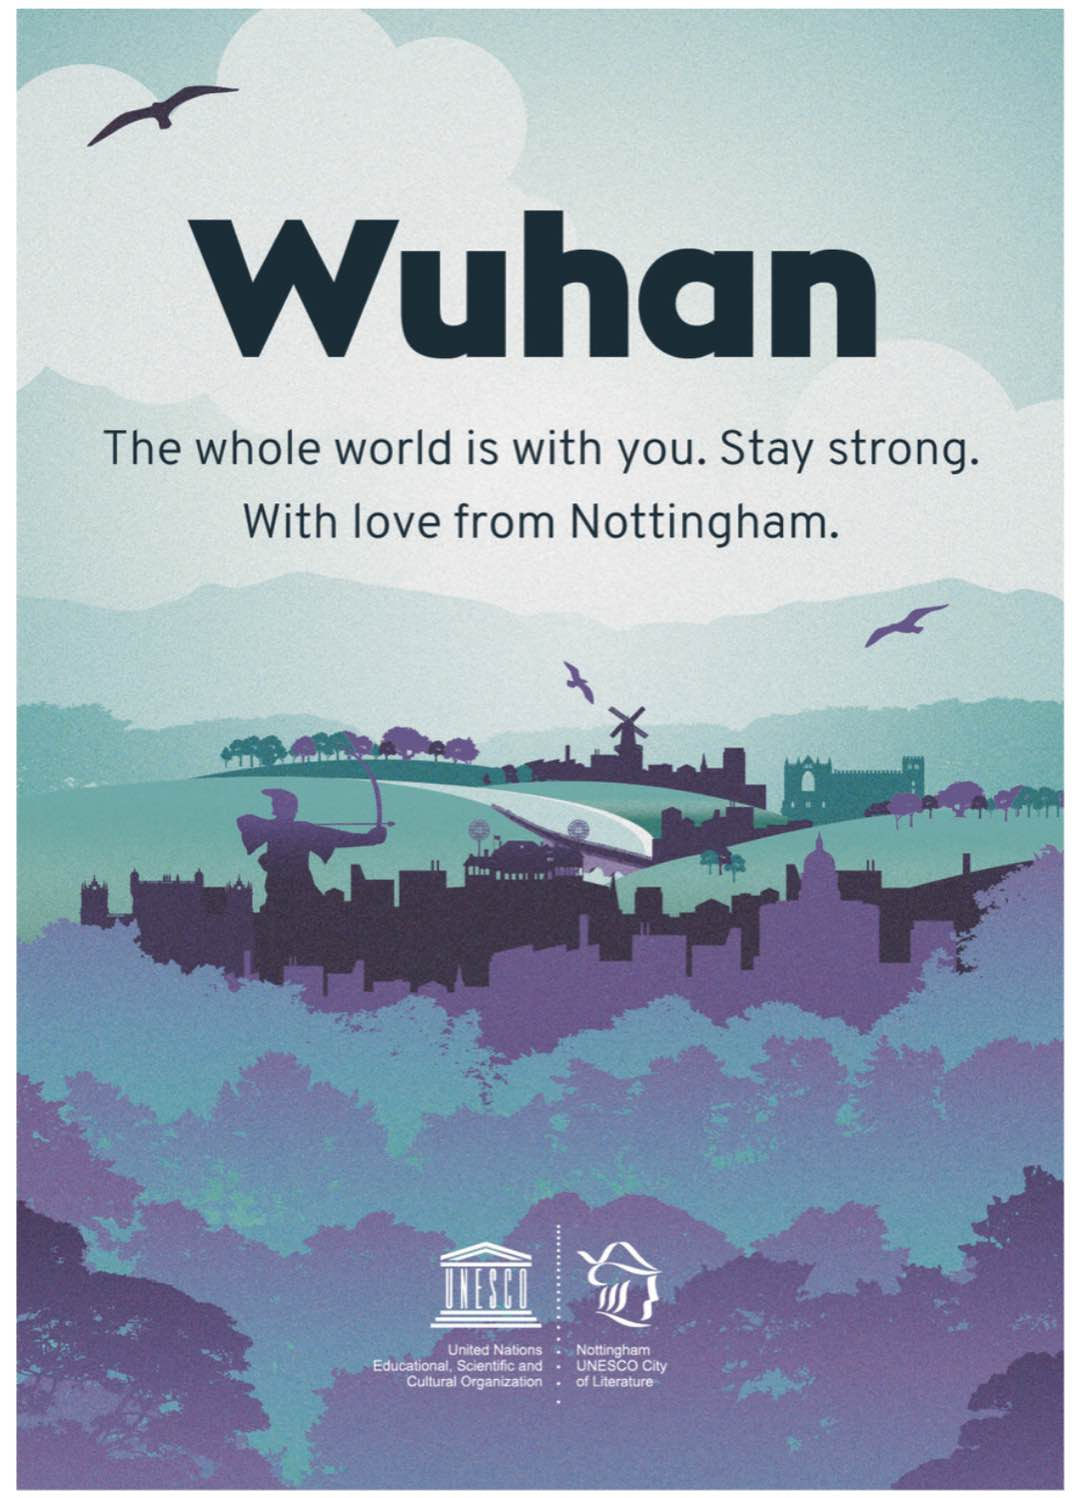 16 cities extend best wishes to Wuhan